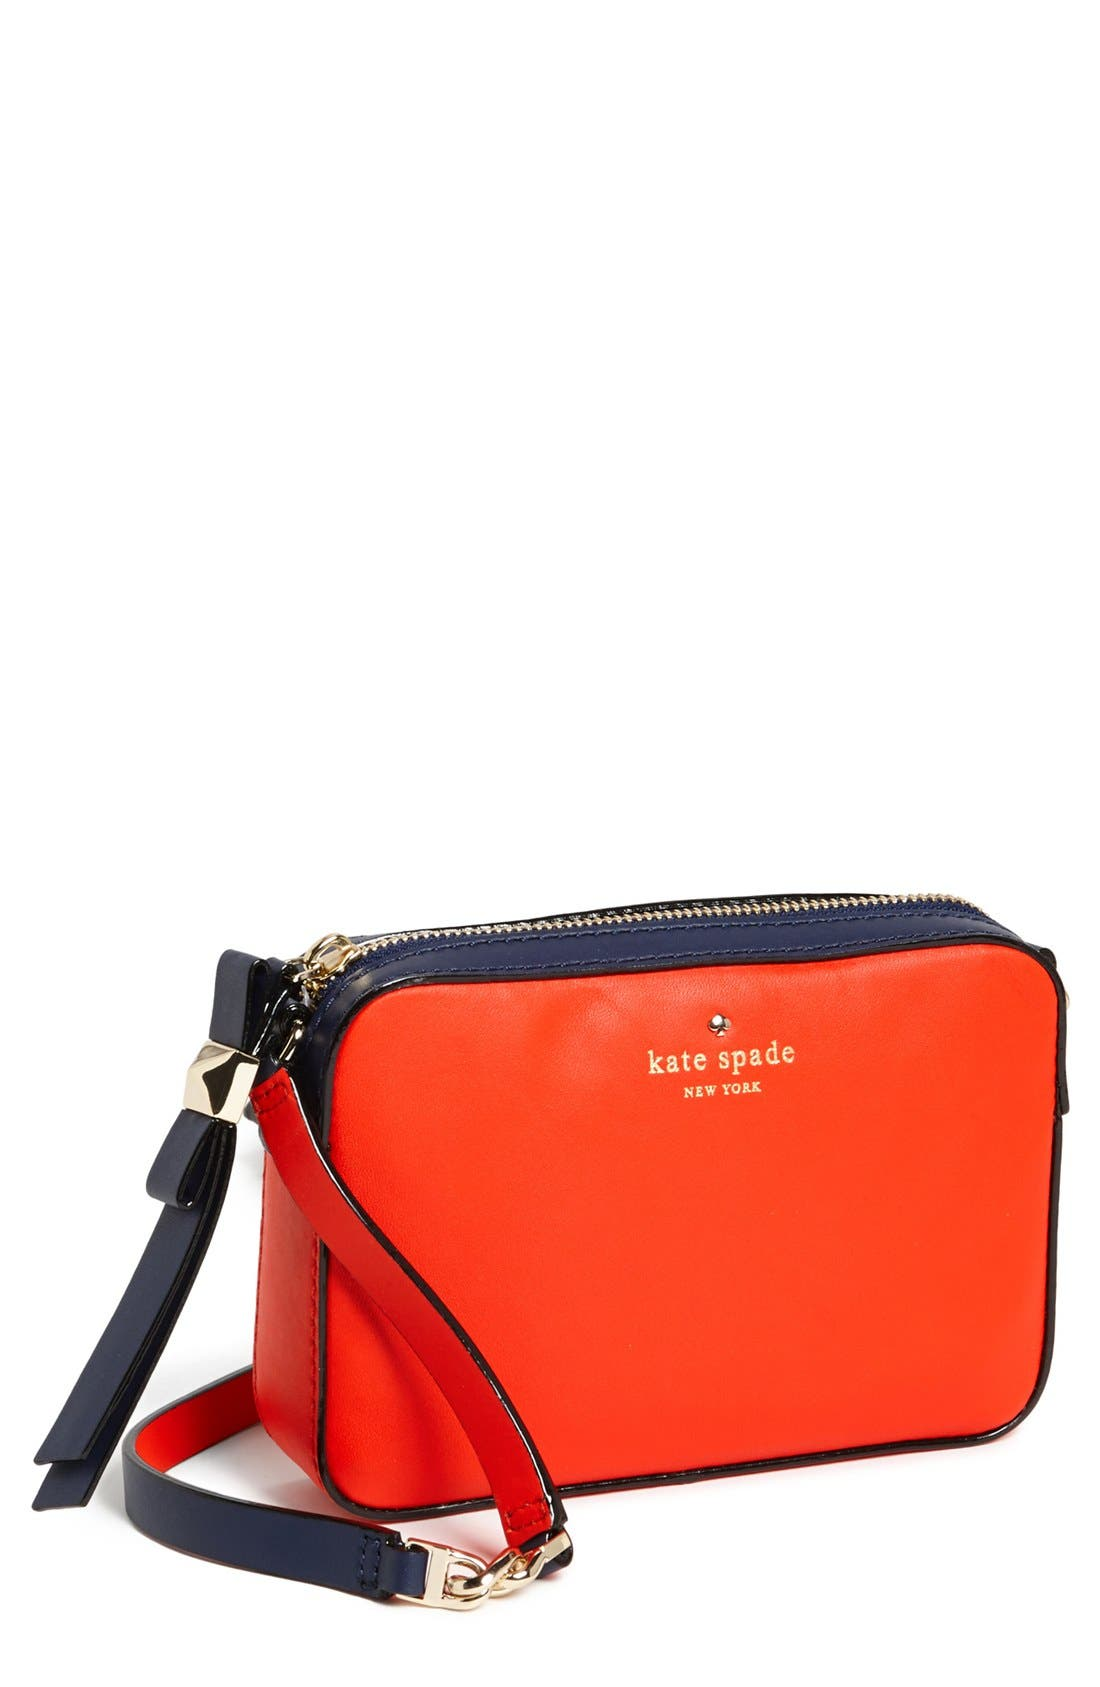 Main Image - kate spade new york 'clover' crossbody